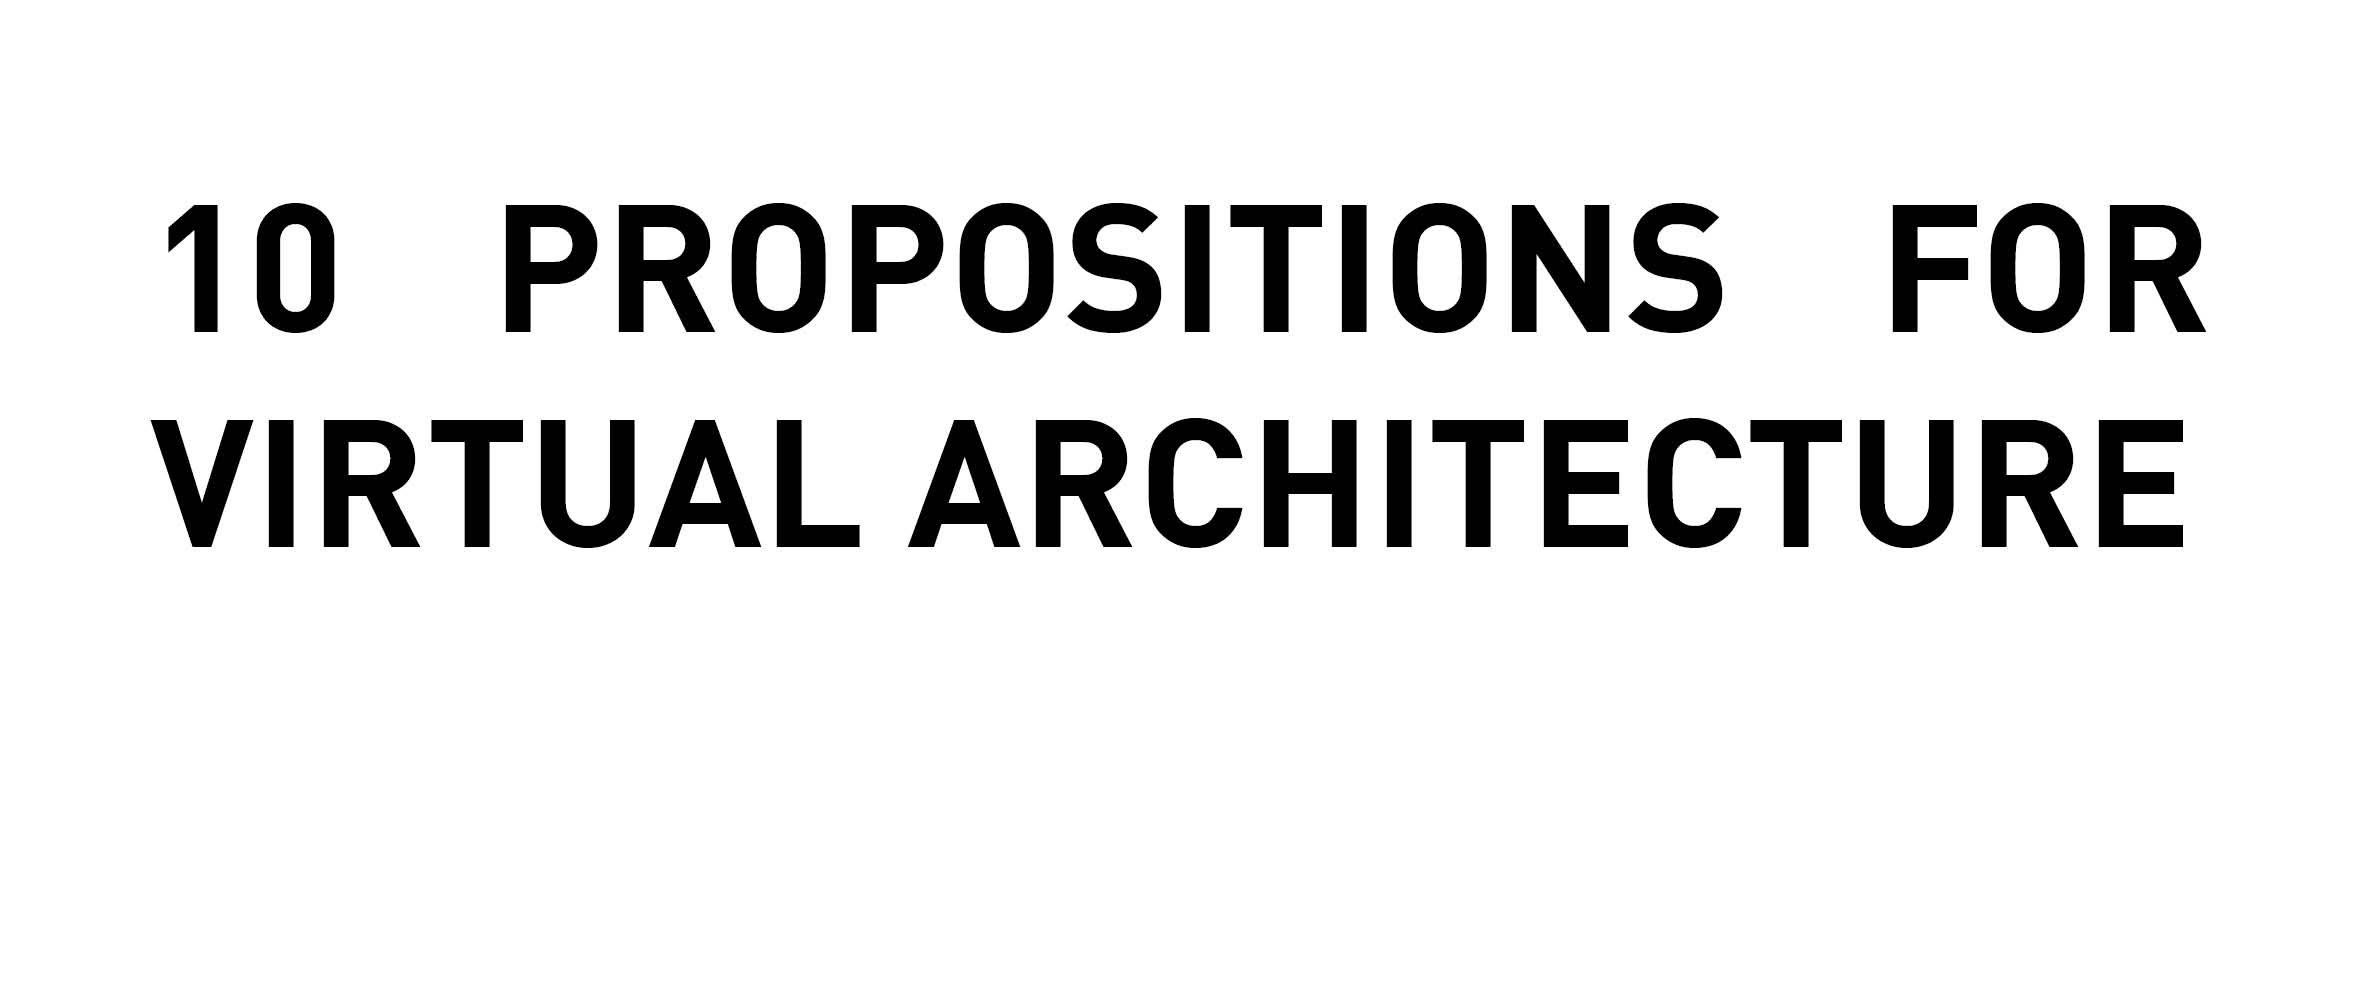 10 Propositions for Virtual Architecture